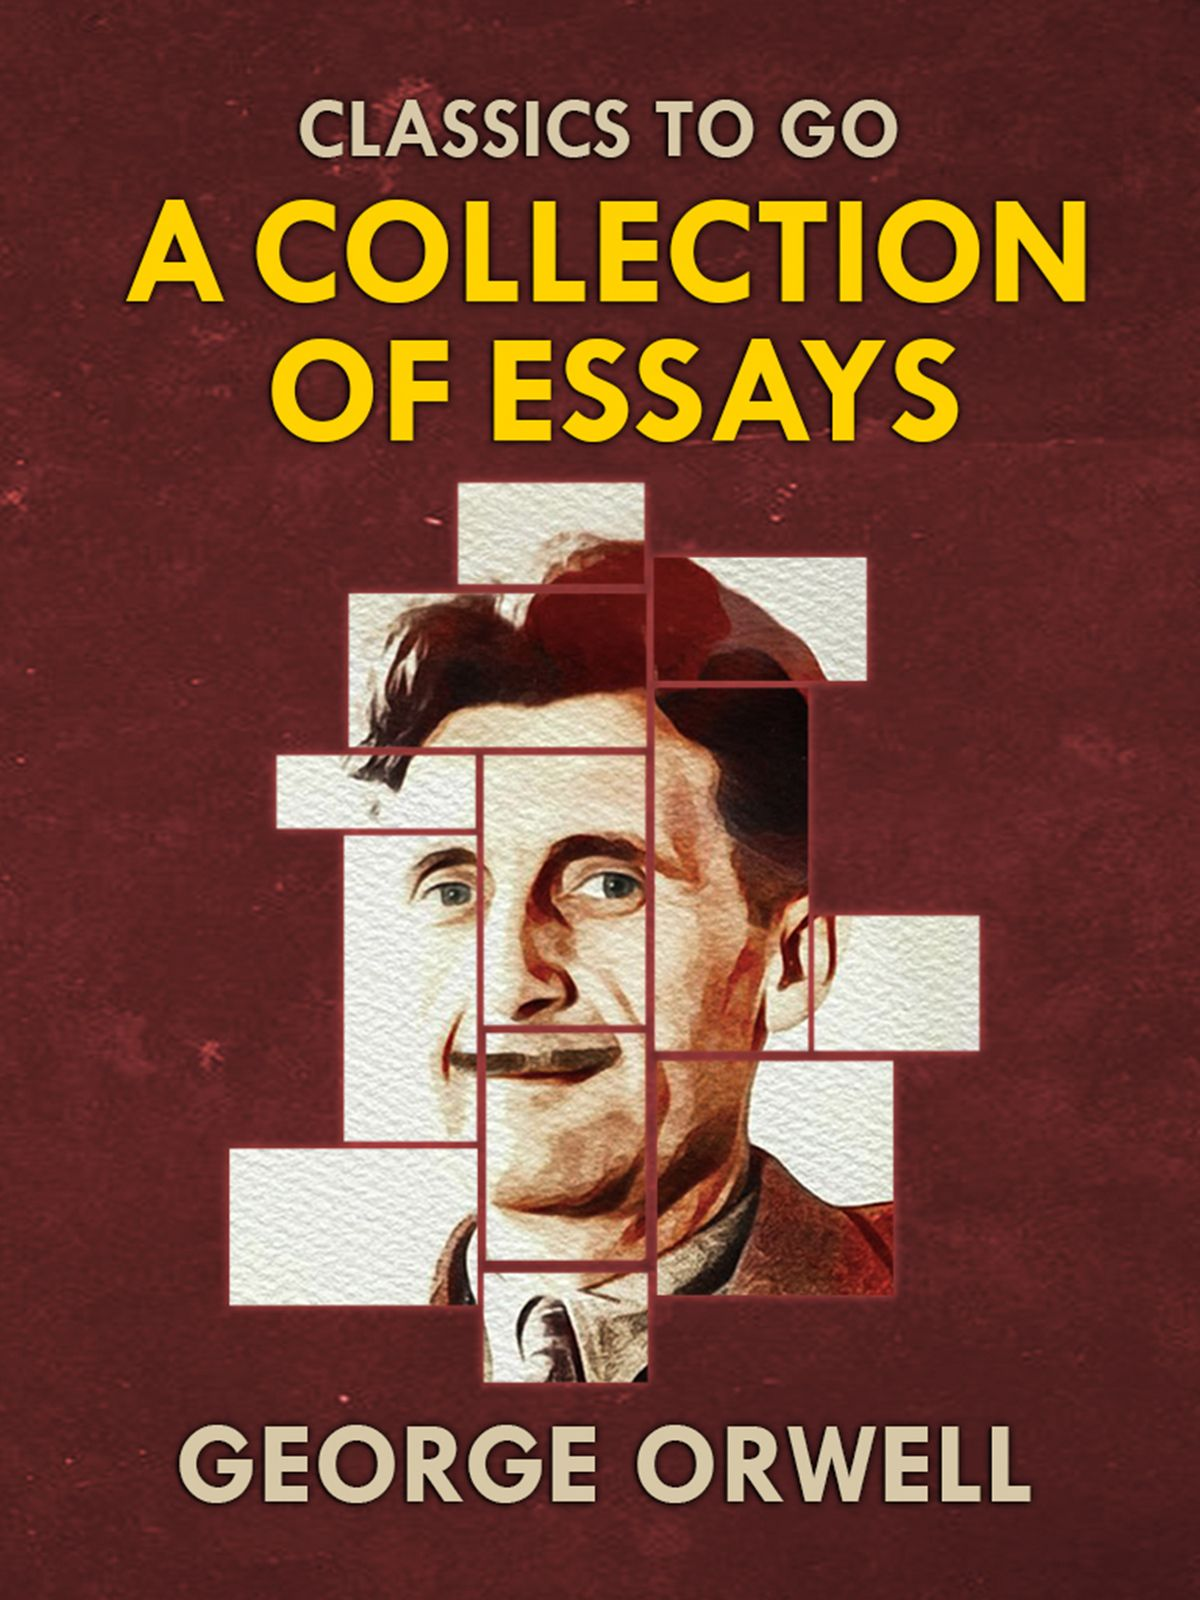 006 Essay Example Collections Of George Orwell Singular Essays Amazon Pdf Epub Full